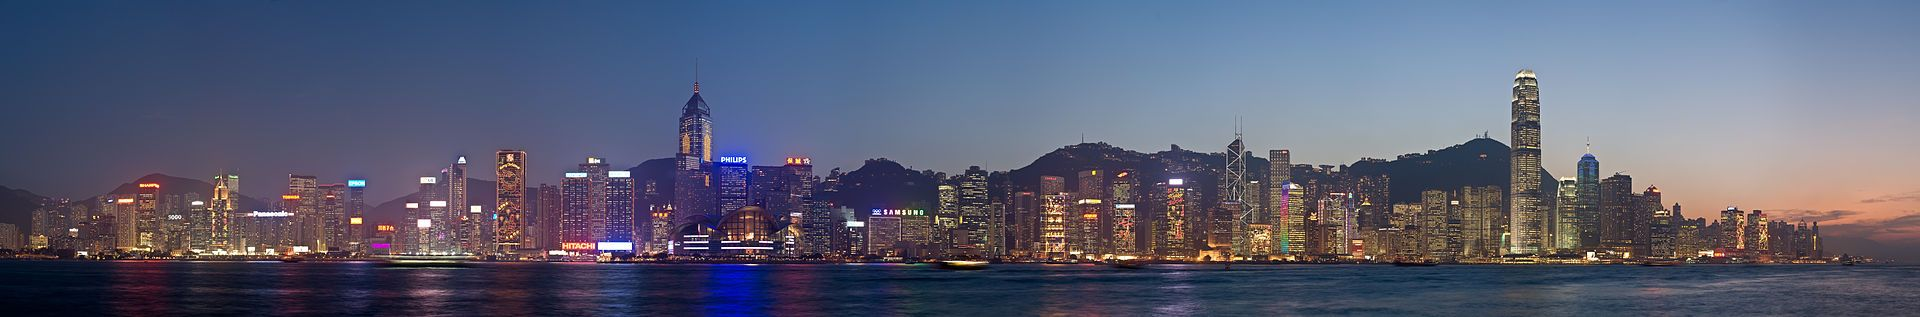 Night time city skyline with Victoria Harbour in front and low hills behind